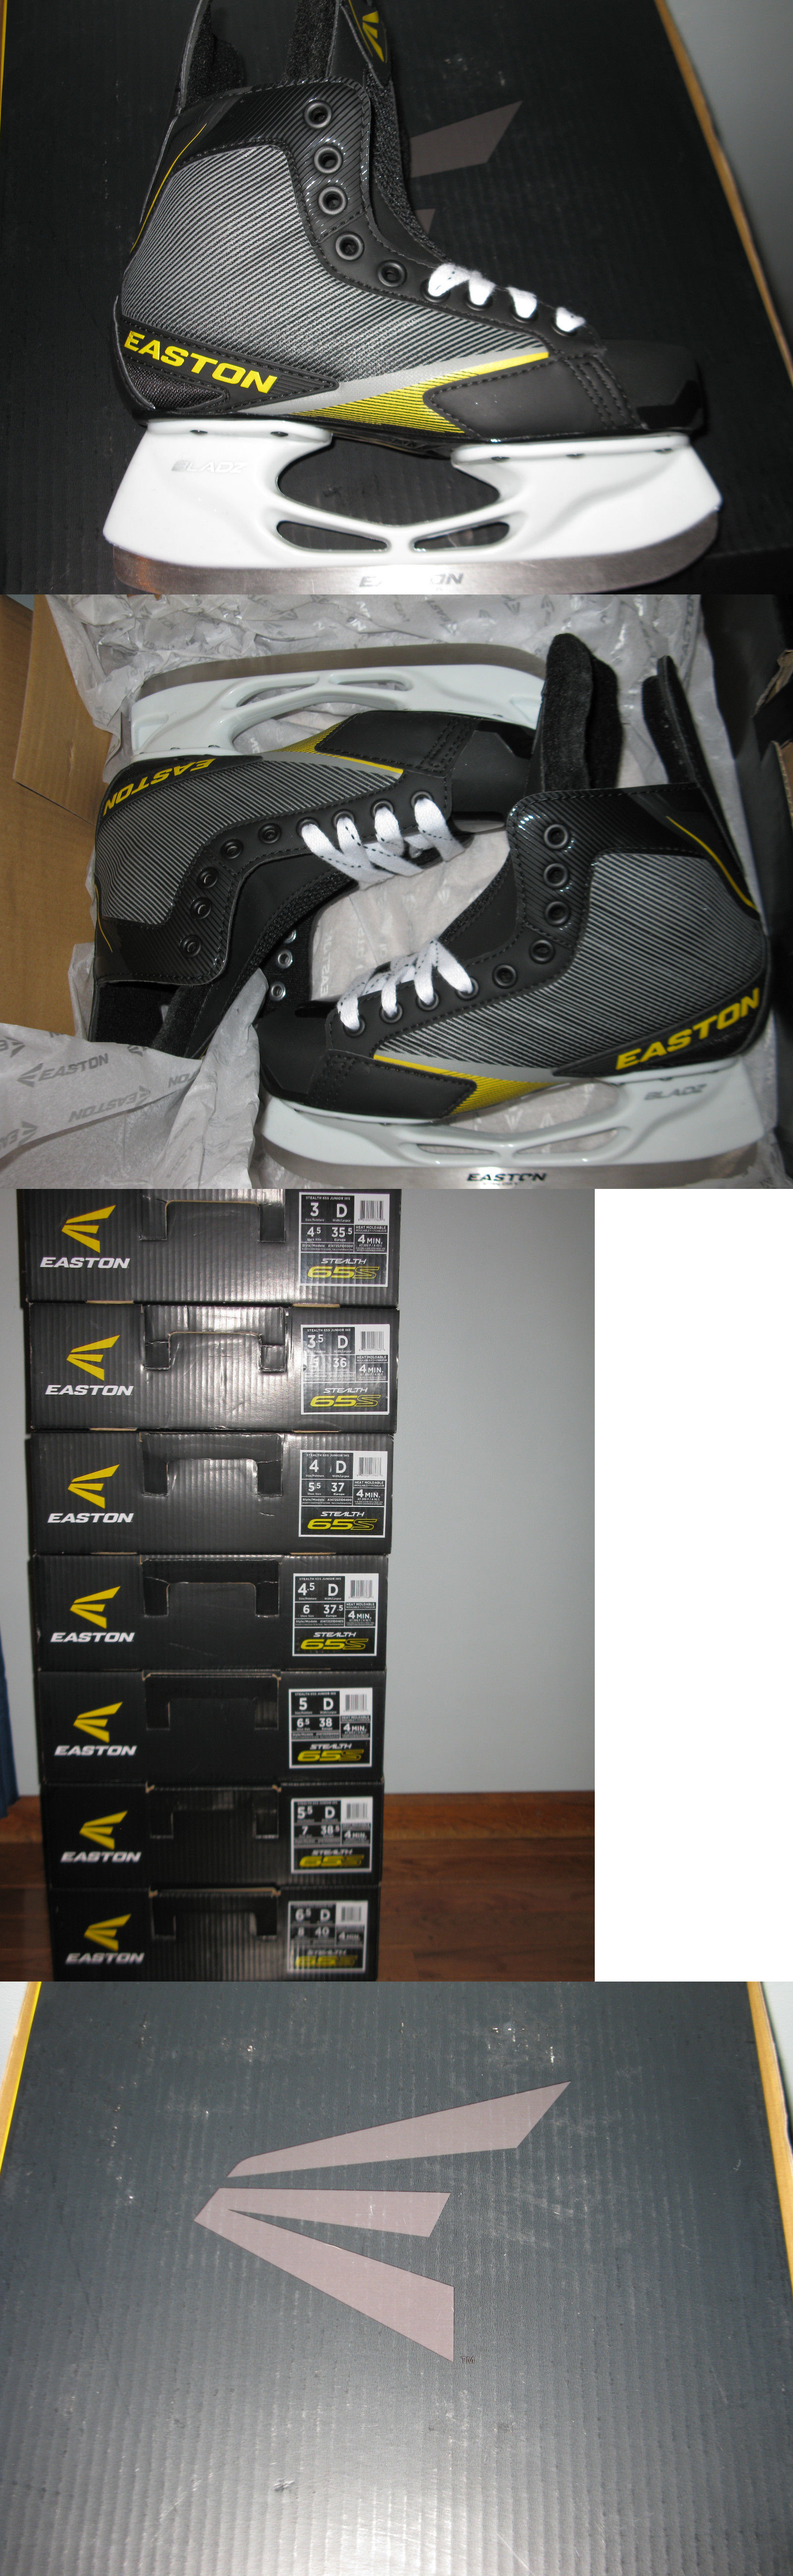 Ice Hockey-Youth 26342: Easton Stealth 65S Skates - Junior 4.5 D -> BUY IT NOW ONLY: $40 on eBay!